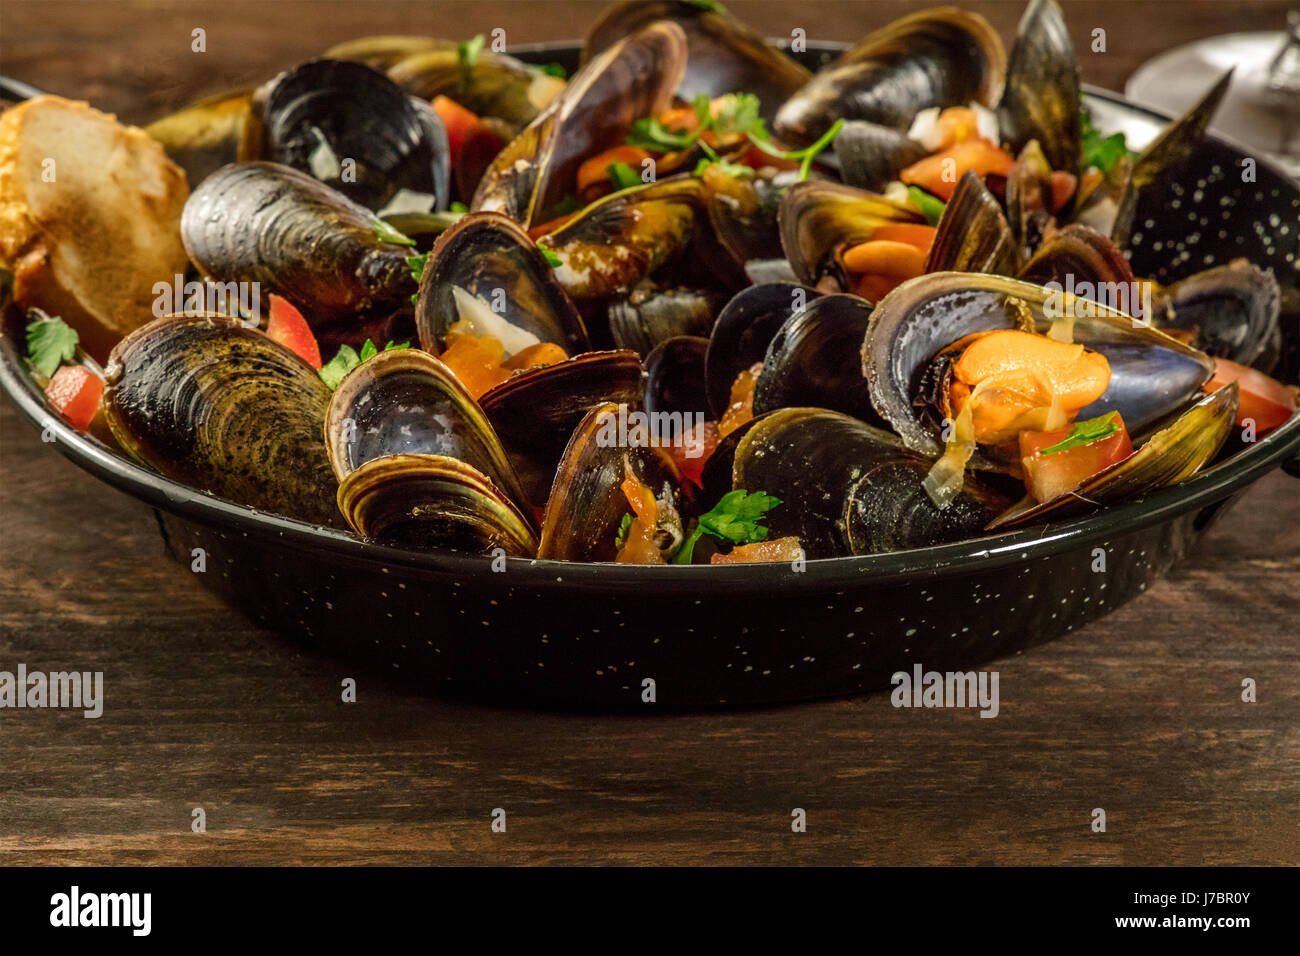 Skillet of marinara mussels on rustic background Stock Photo